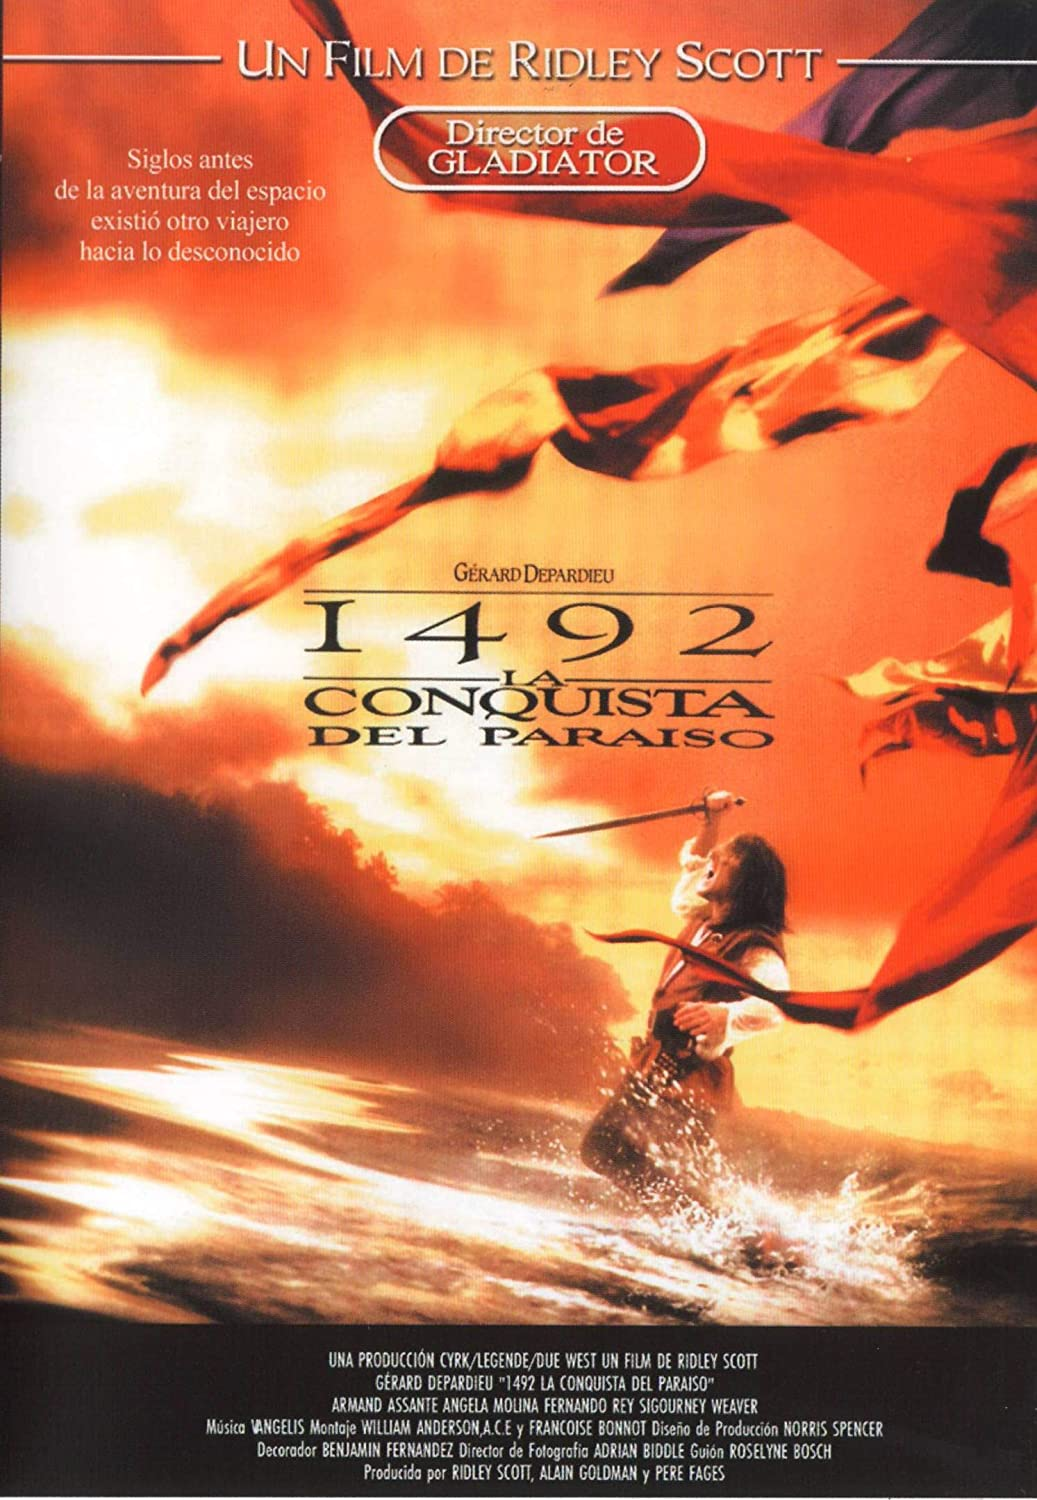 1492 Conquest Of Paradise 1492 La Conquista Del Paraiso Pal Region 0 Dvd Import Spain Gérard Depardieu Armand Assante Sigourney Weaver Angela Molina Tchéky Karyo Ridley Scott Movies Tv